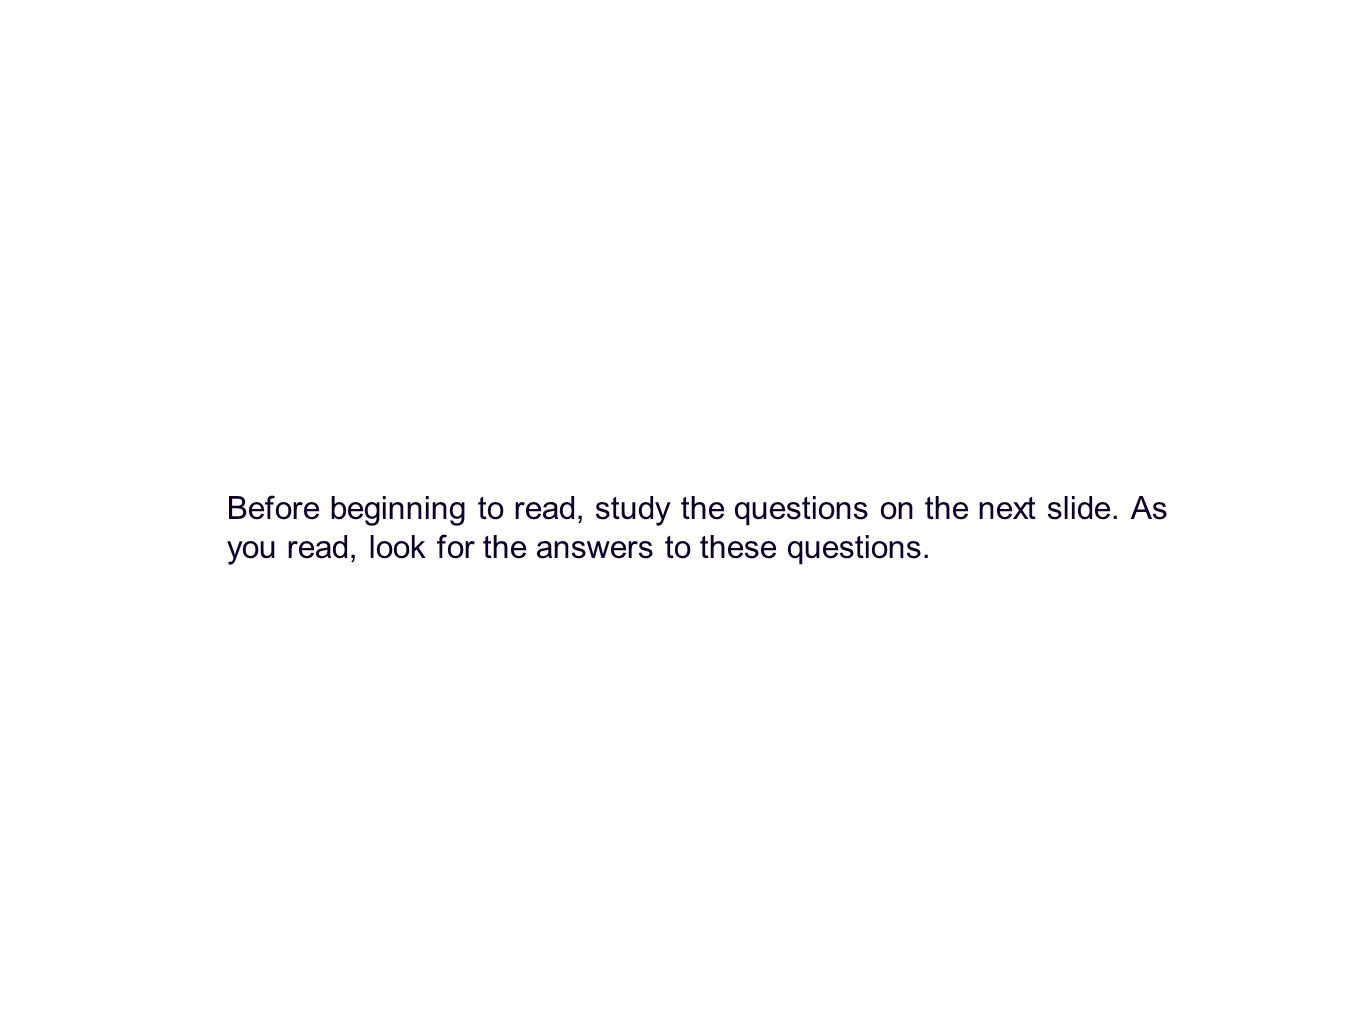 Before beginning to read, study the questions on the next slide.